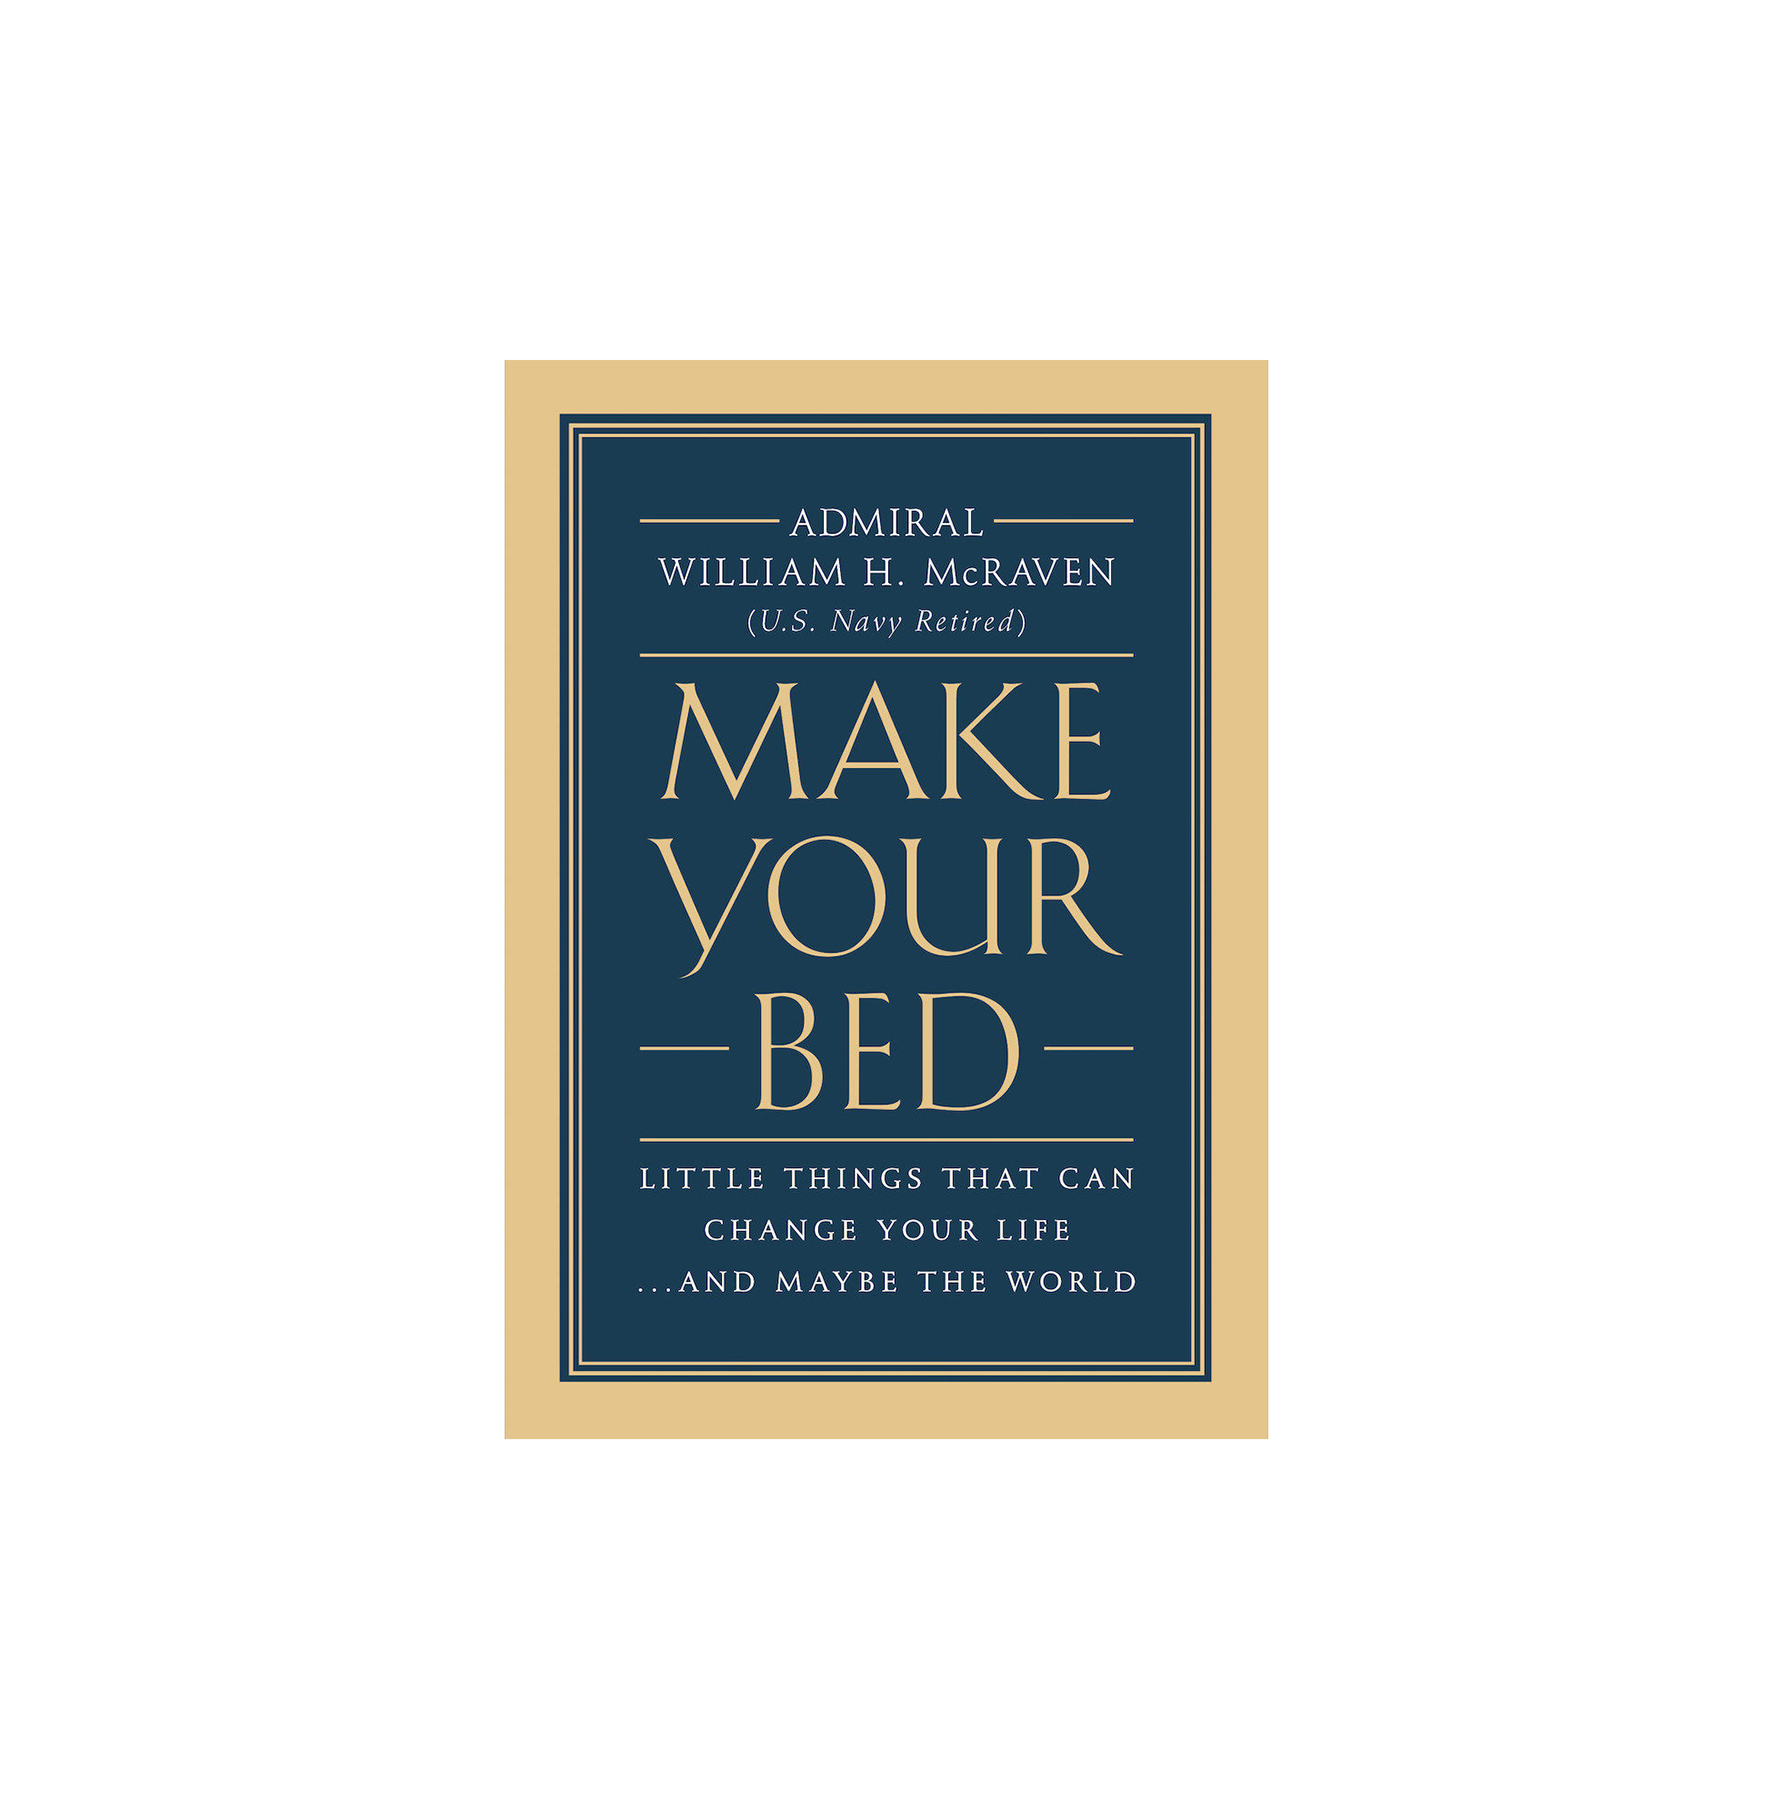 Make Your Bed: Little Things That Can Change Your Life…and Maybe the World, by Admiral William H. McRaven